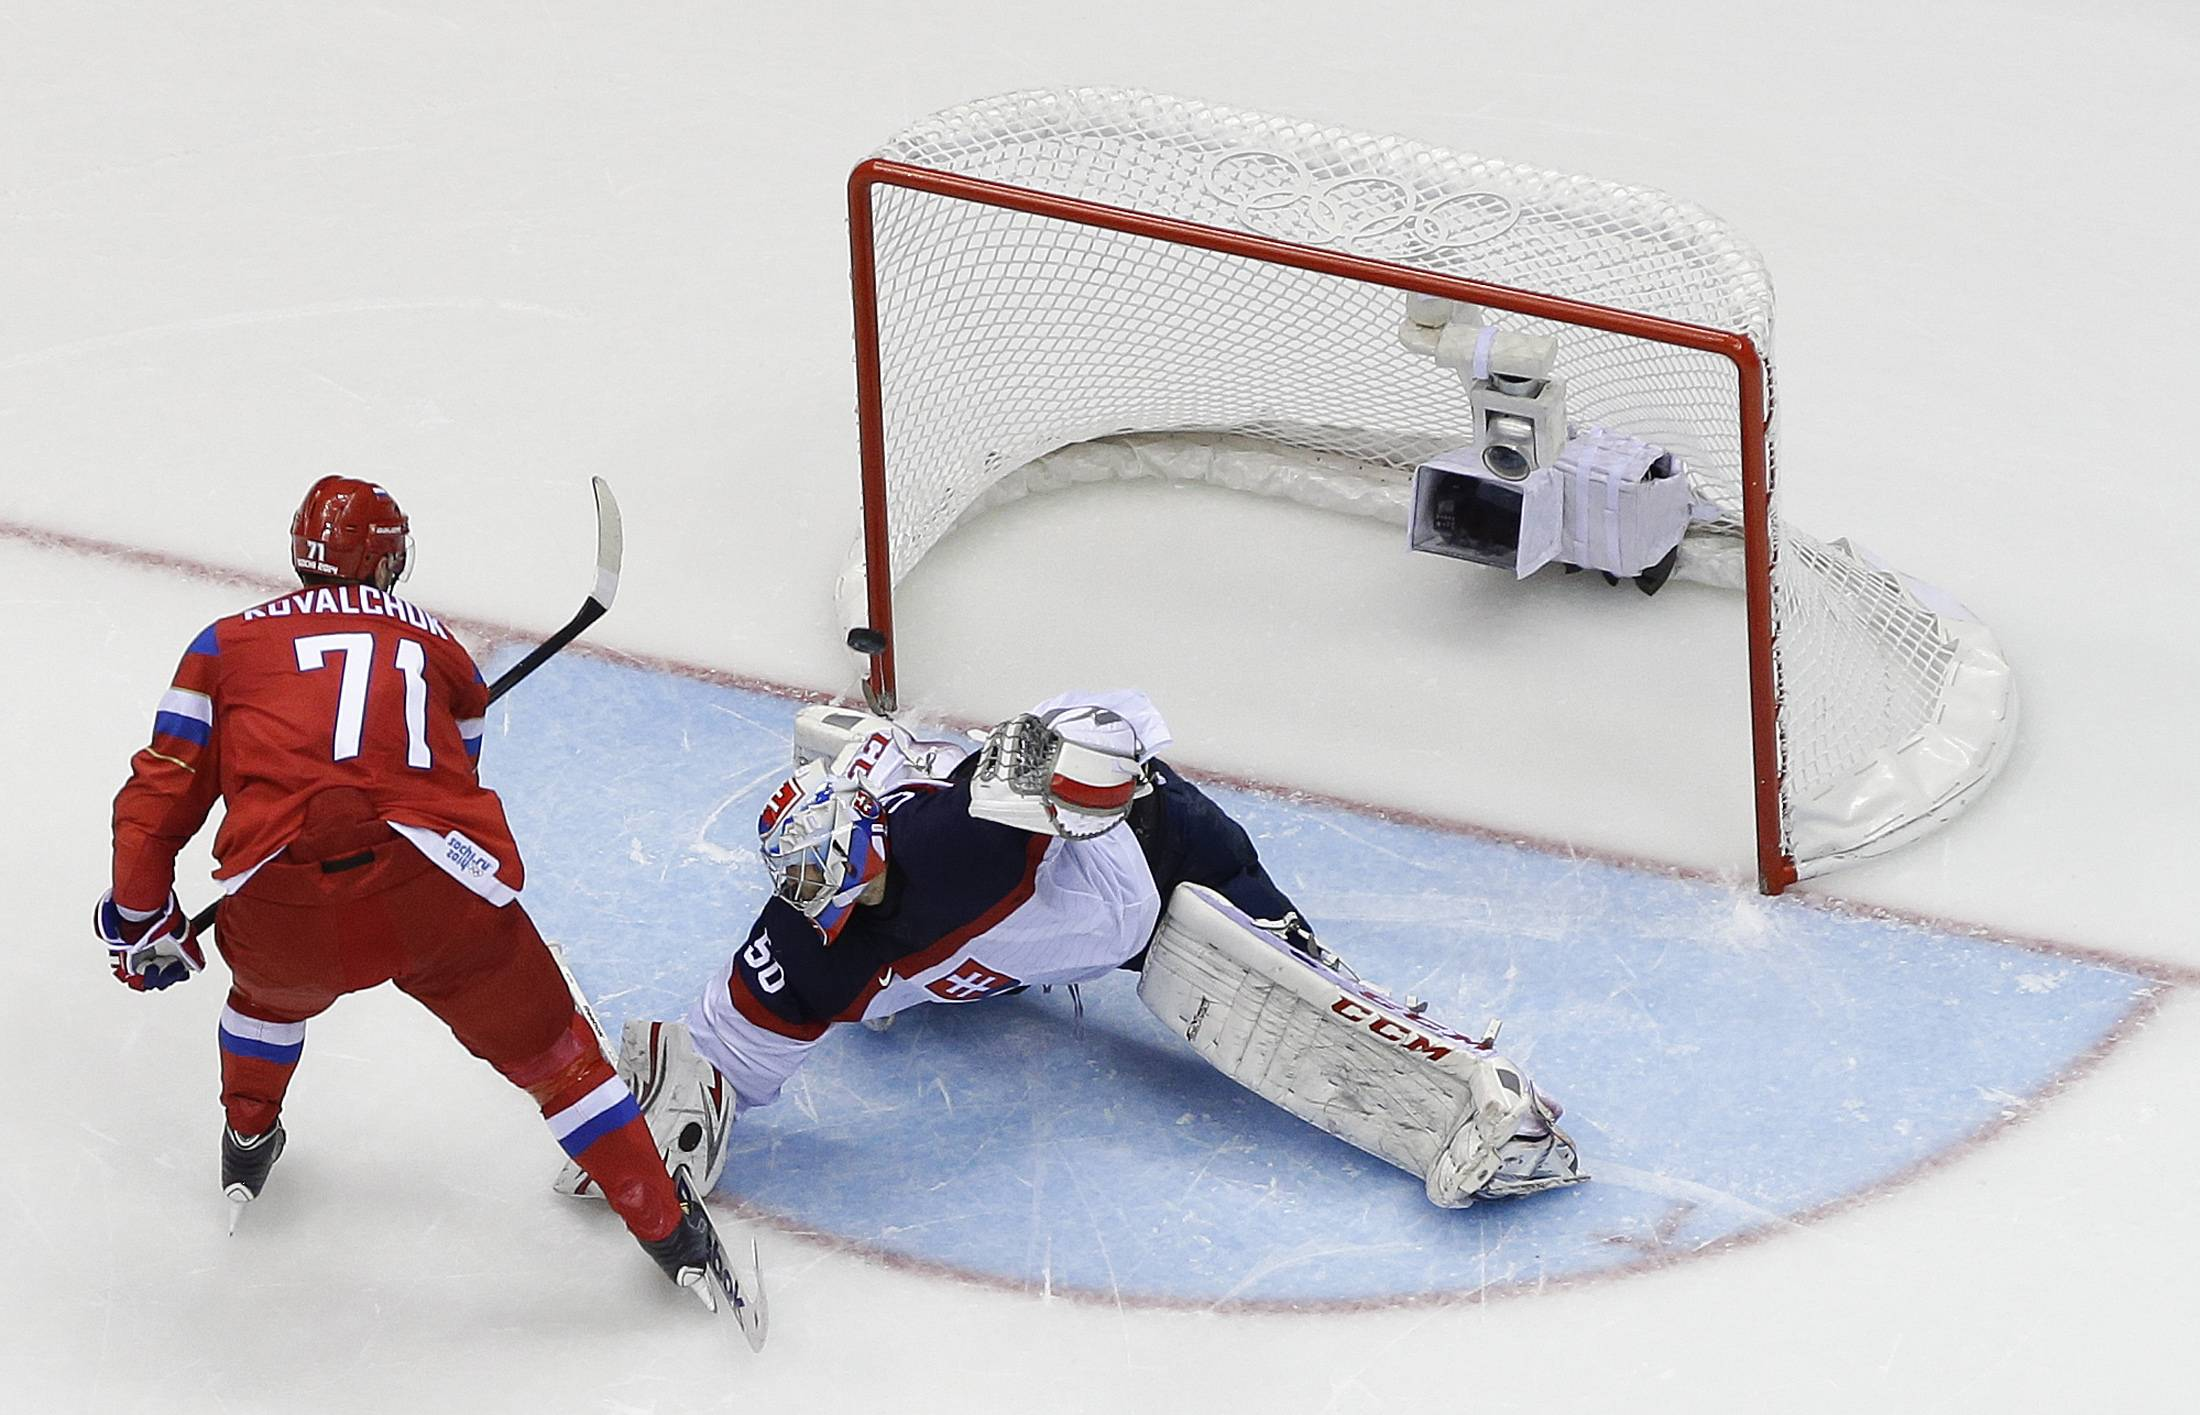 Russia forward Ilya Kovalchuk flips the puck past Slovakia goaltender Jan Laco to win a shootout during a men's ice hockey game at the 2014 Winter Olympics, Sunday, Feb. 16, 2014, in Sochi, Russia. Russia won 1-0.